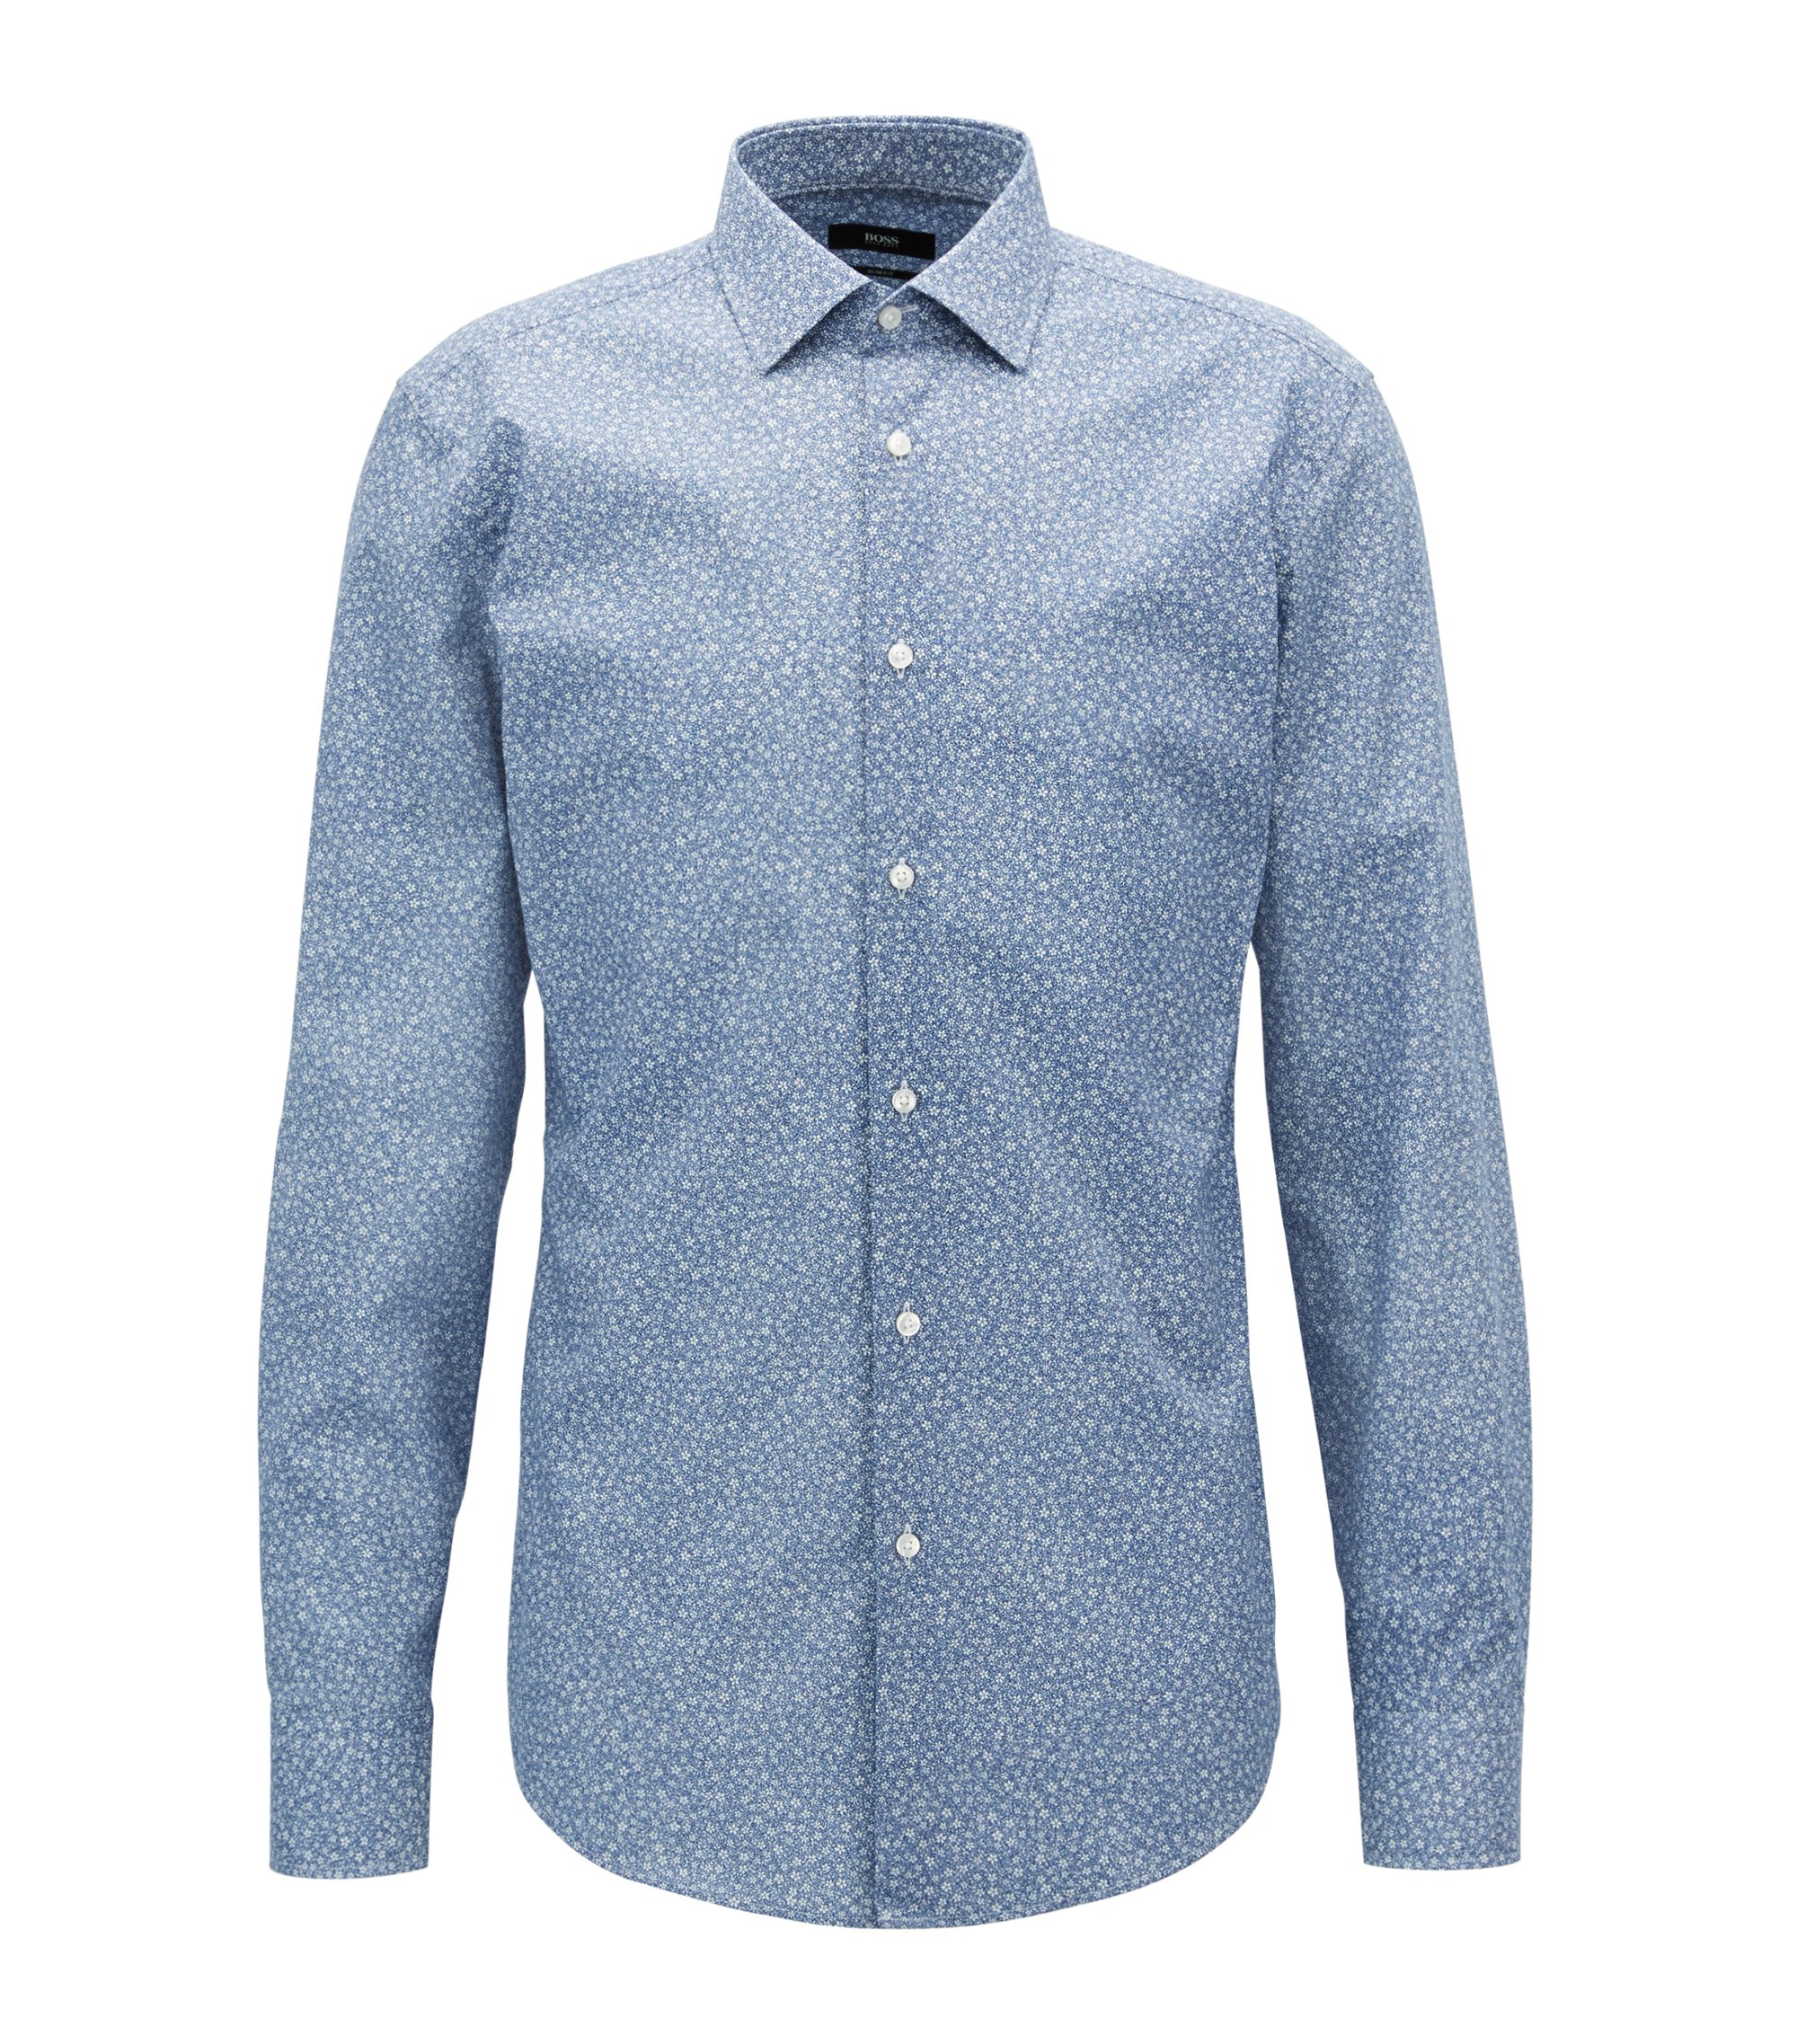 Floral-print cotton shirt in a slim fit , Blu scuro